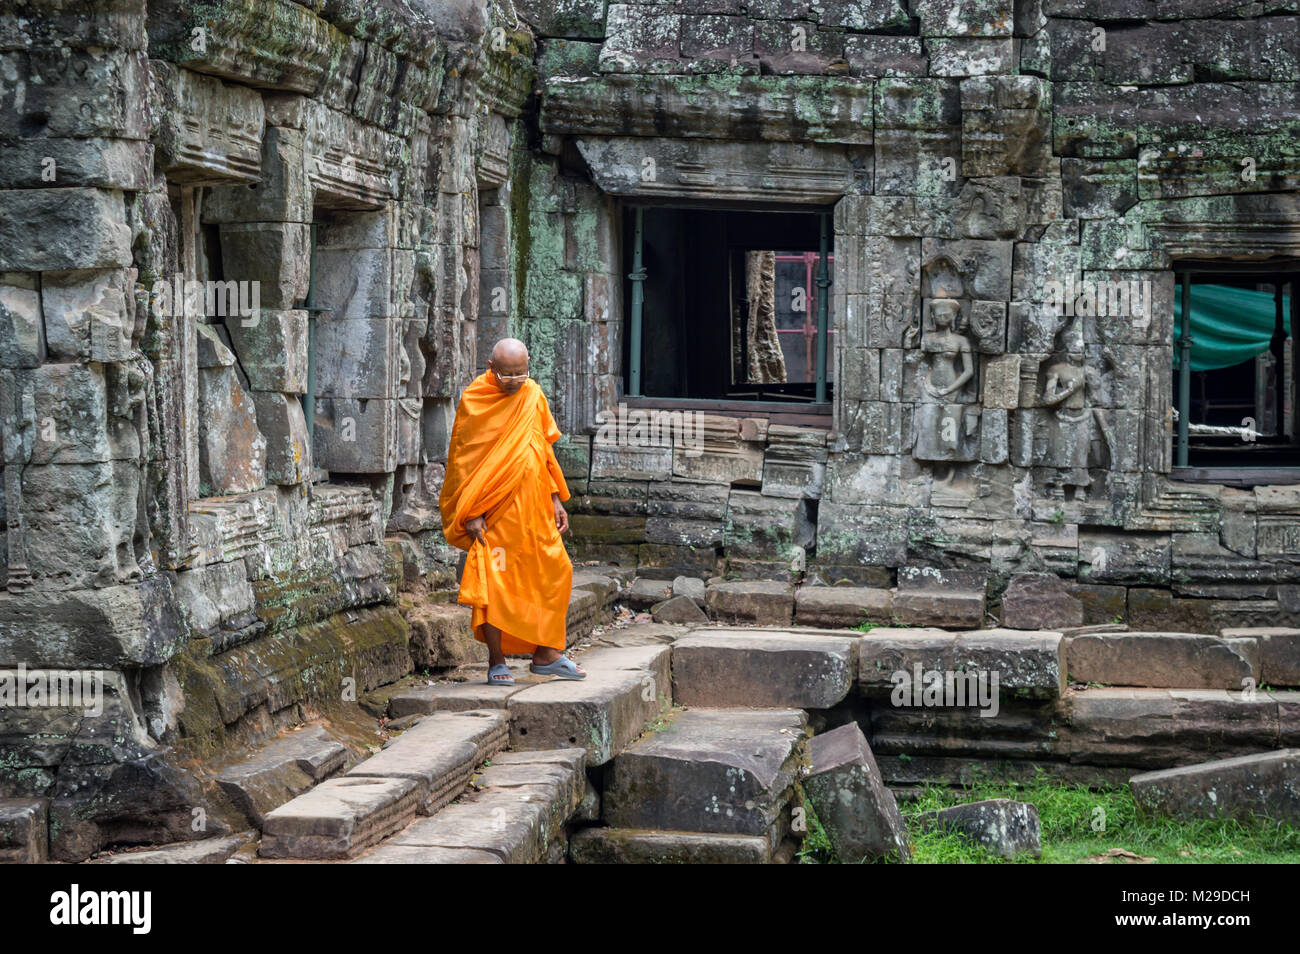 Monk in orange robe in an ancient temple in Angkor Wat, Siem Rep, Cambodia - Stock Image